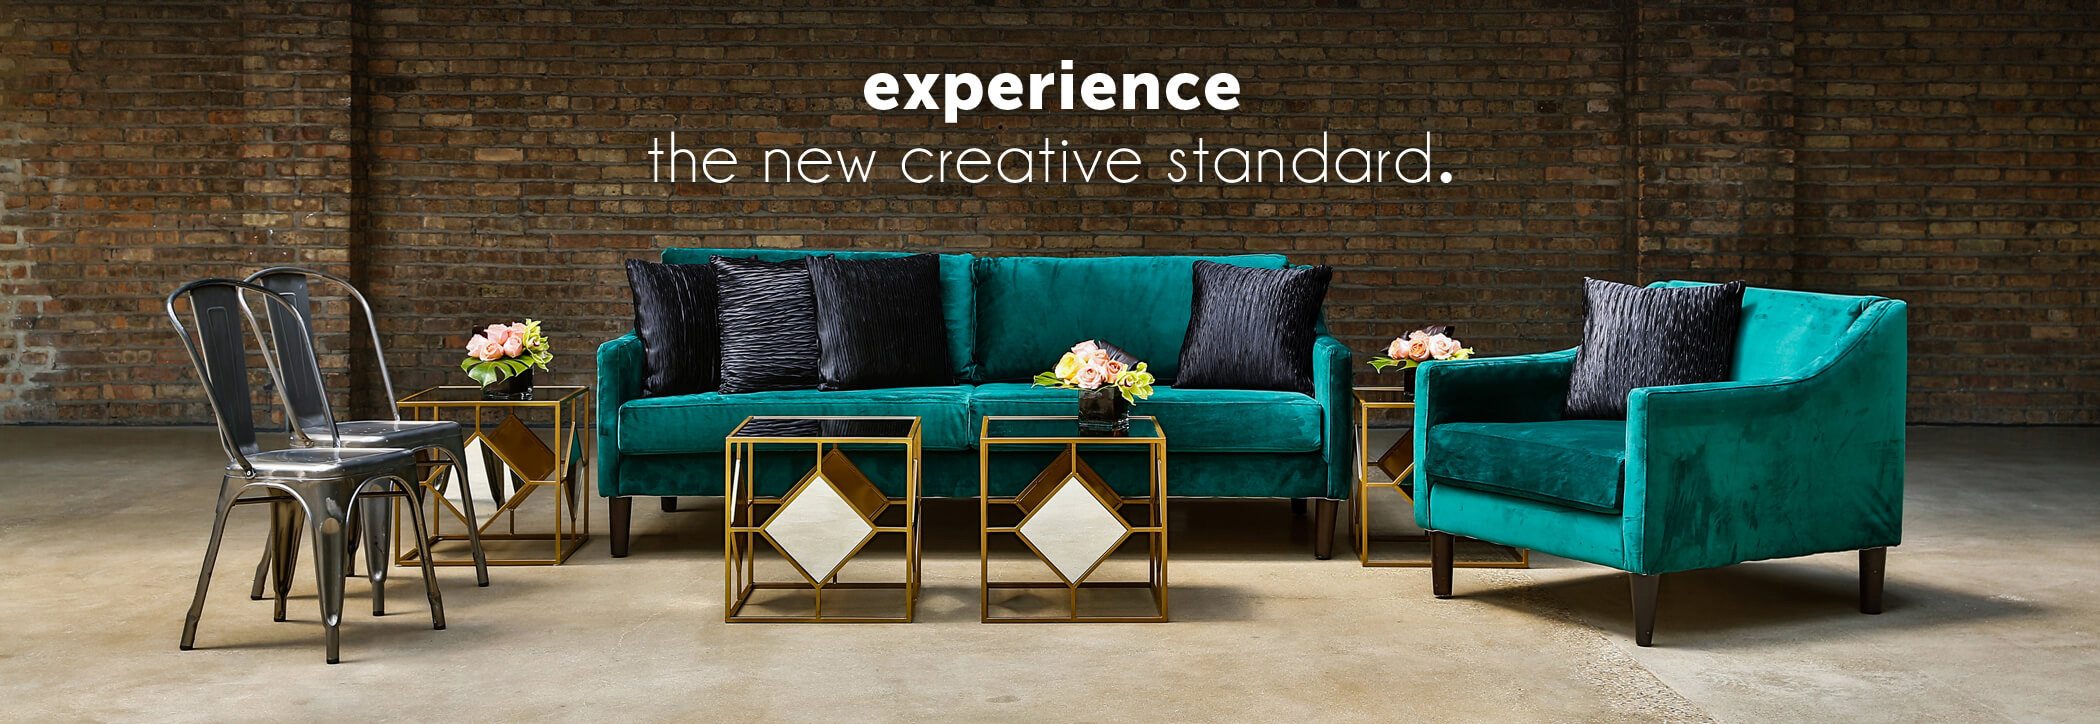 Beautiful AFR® Event Furnishings Offers Exquisite Furniture And Accessory Rentals For  Special Events Including Red Carpet Events, Weddings, Corporate Meetings,  ...